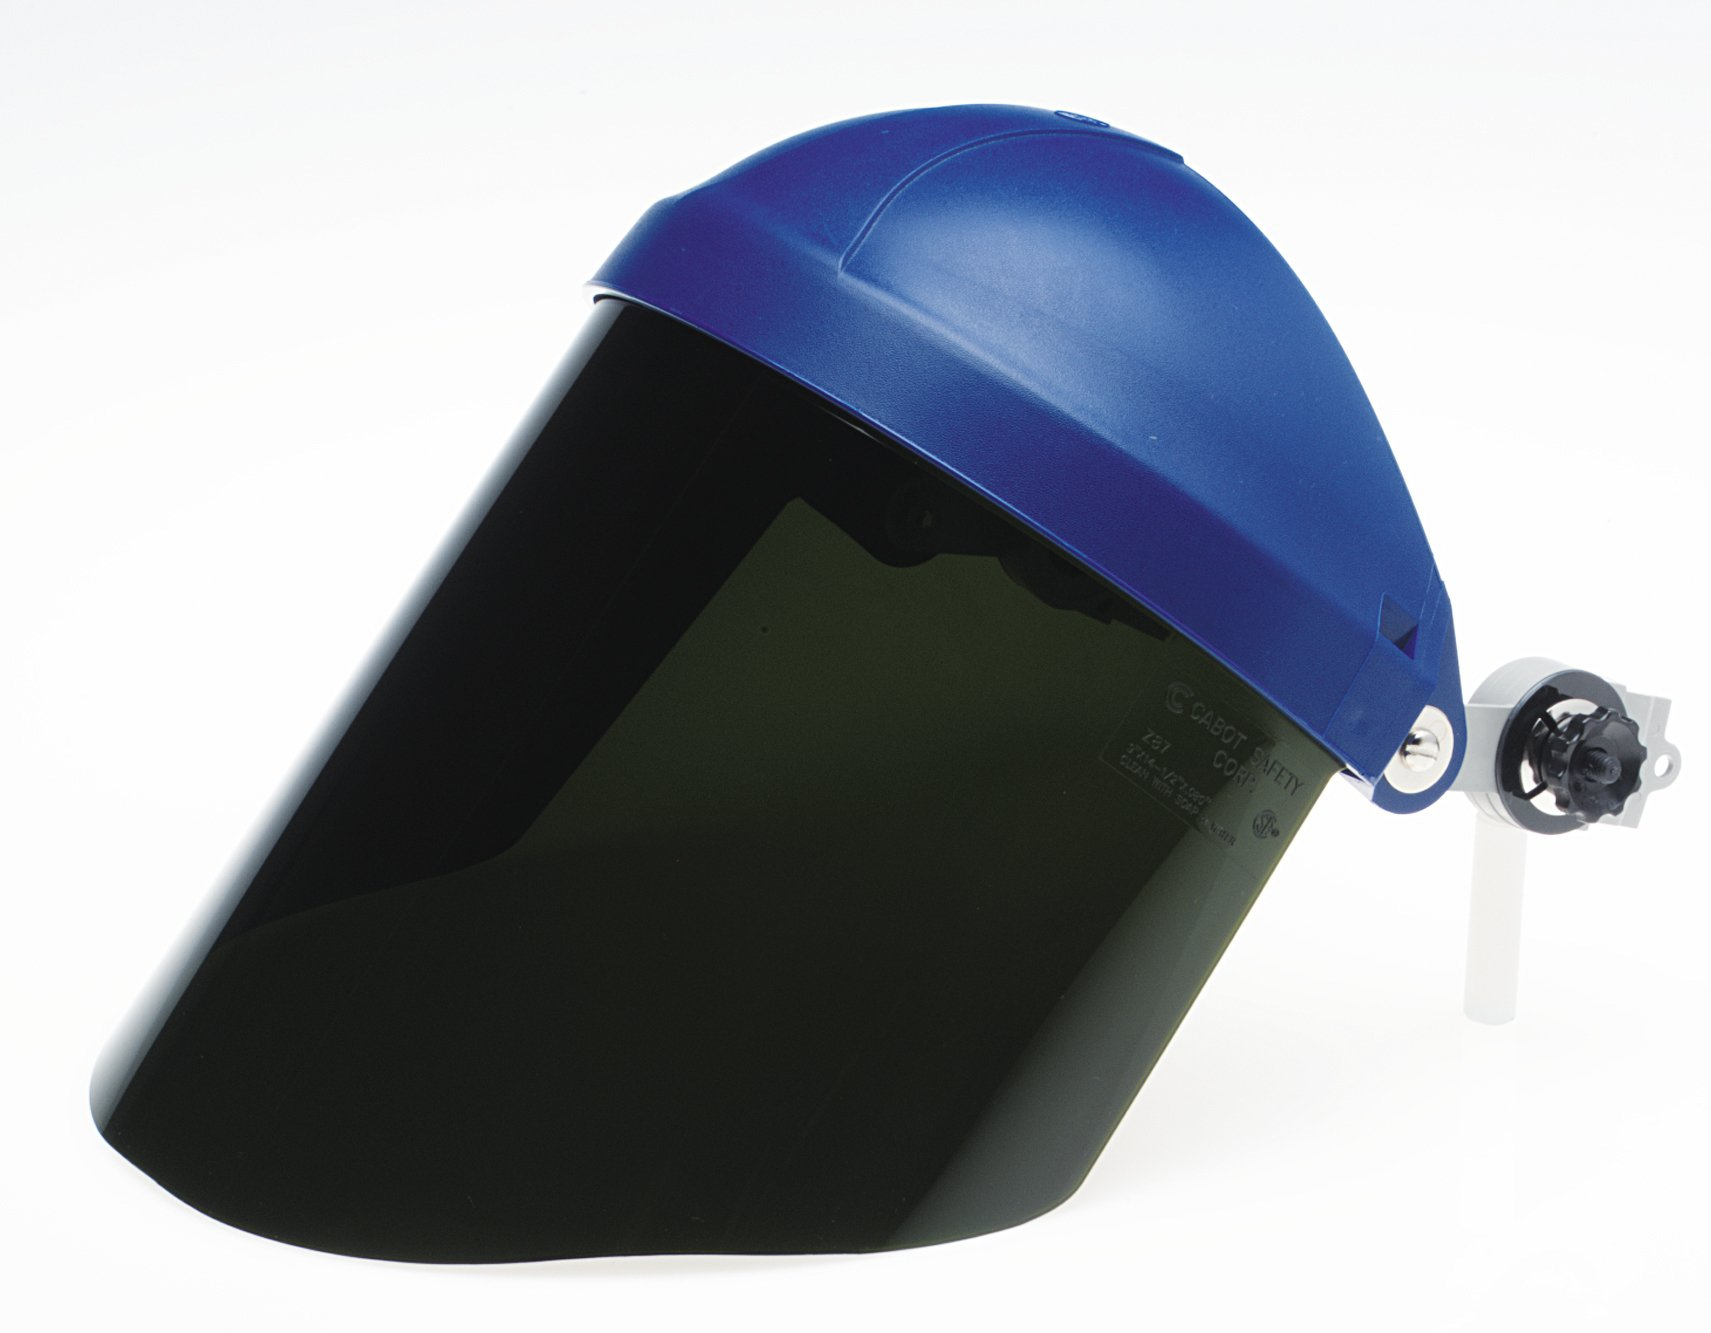 3M Polycarbonate Faceshield Window W96IR5, Face Protection 82706-10000, Shade 5.0 by 3M Personal Protective Equipment